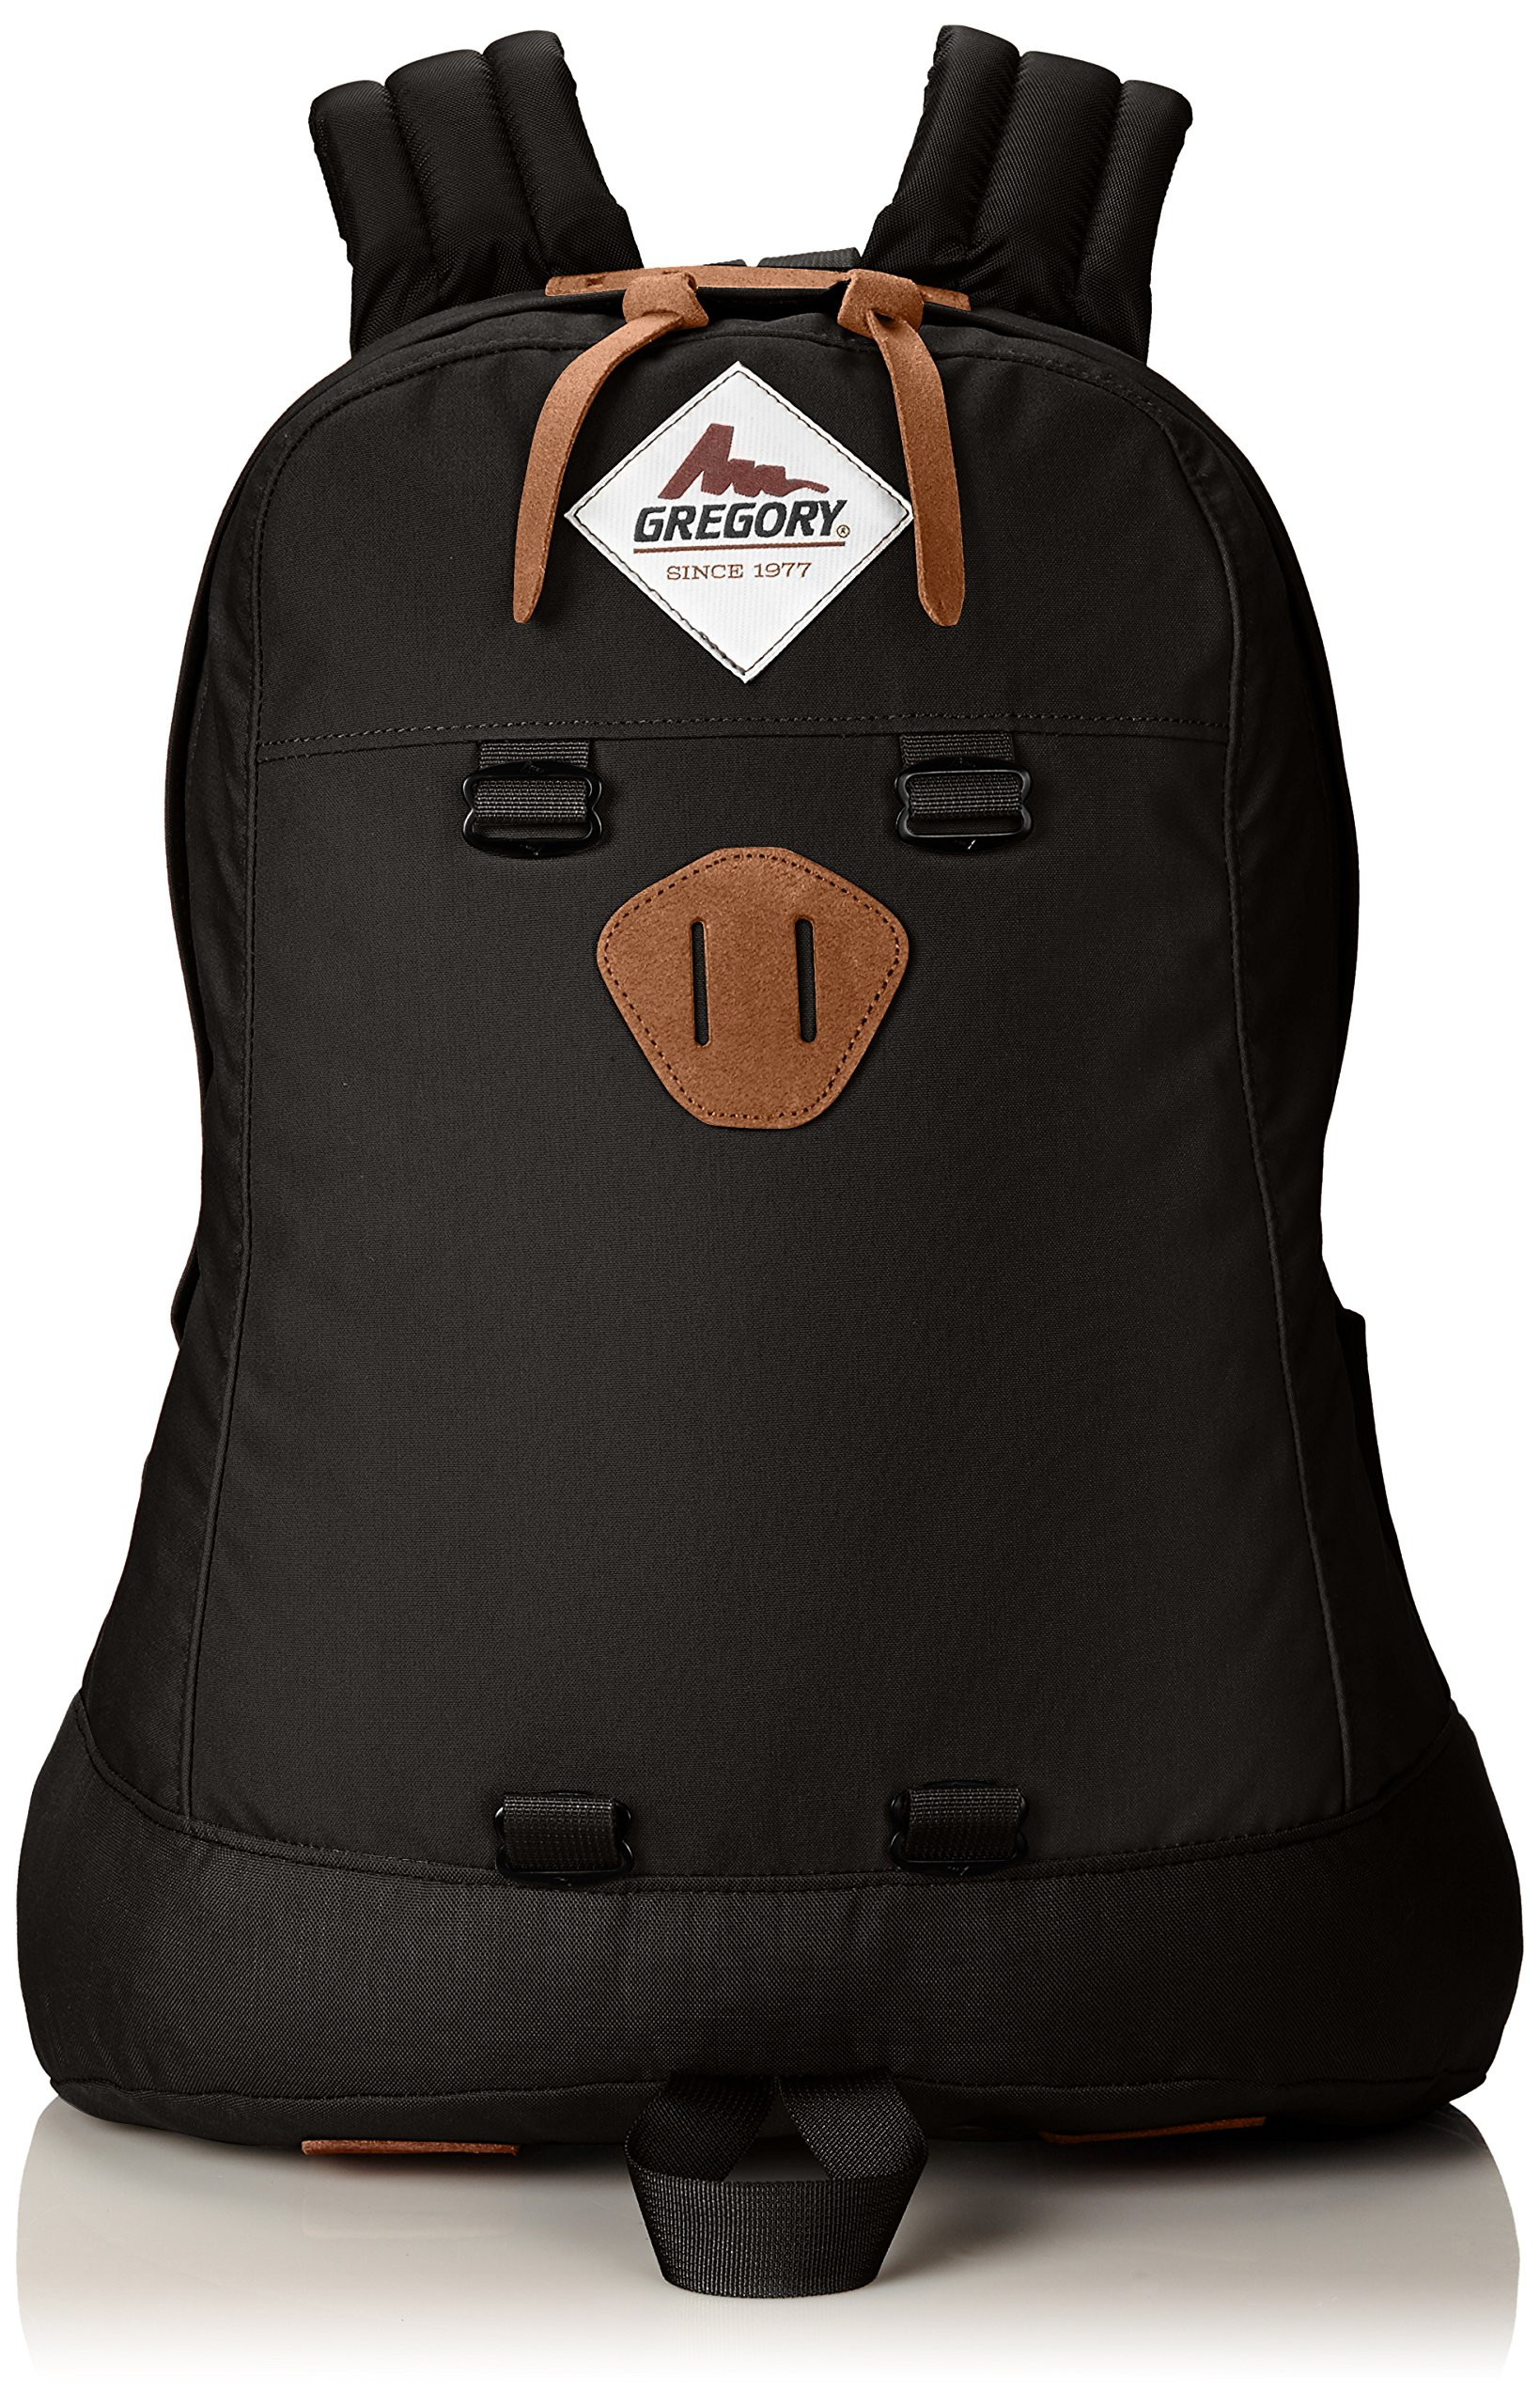 Gregory Mountain Products Kletter Day Backpack | Commute, Travel, Everyday | Simple, Comfortable, Durable